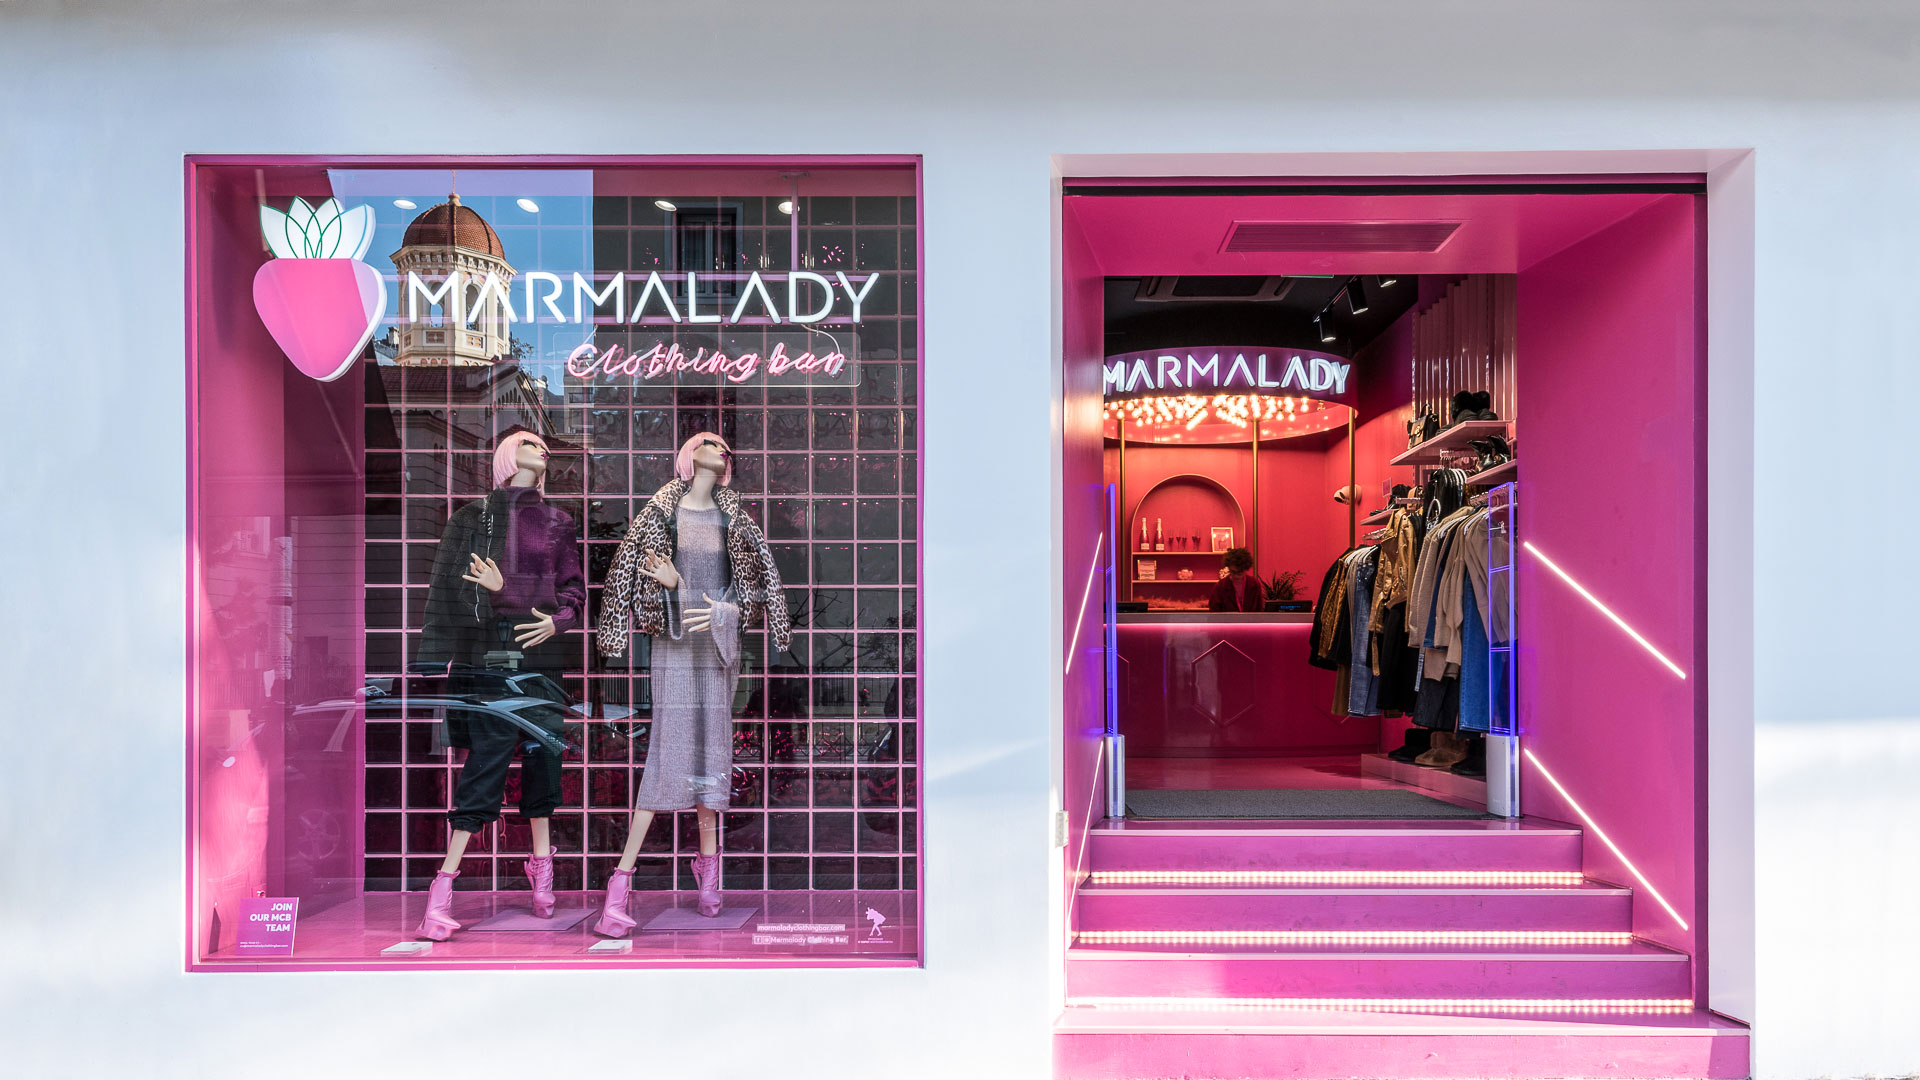 Marmalady Clothing Bar